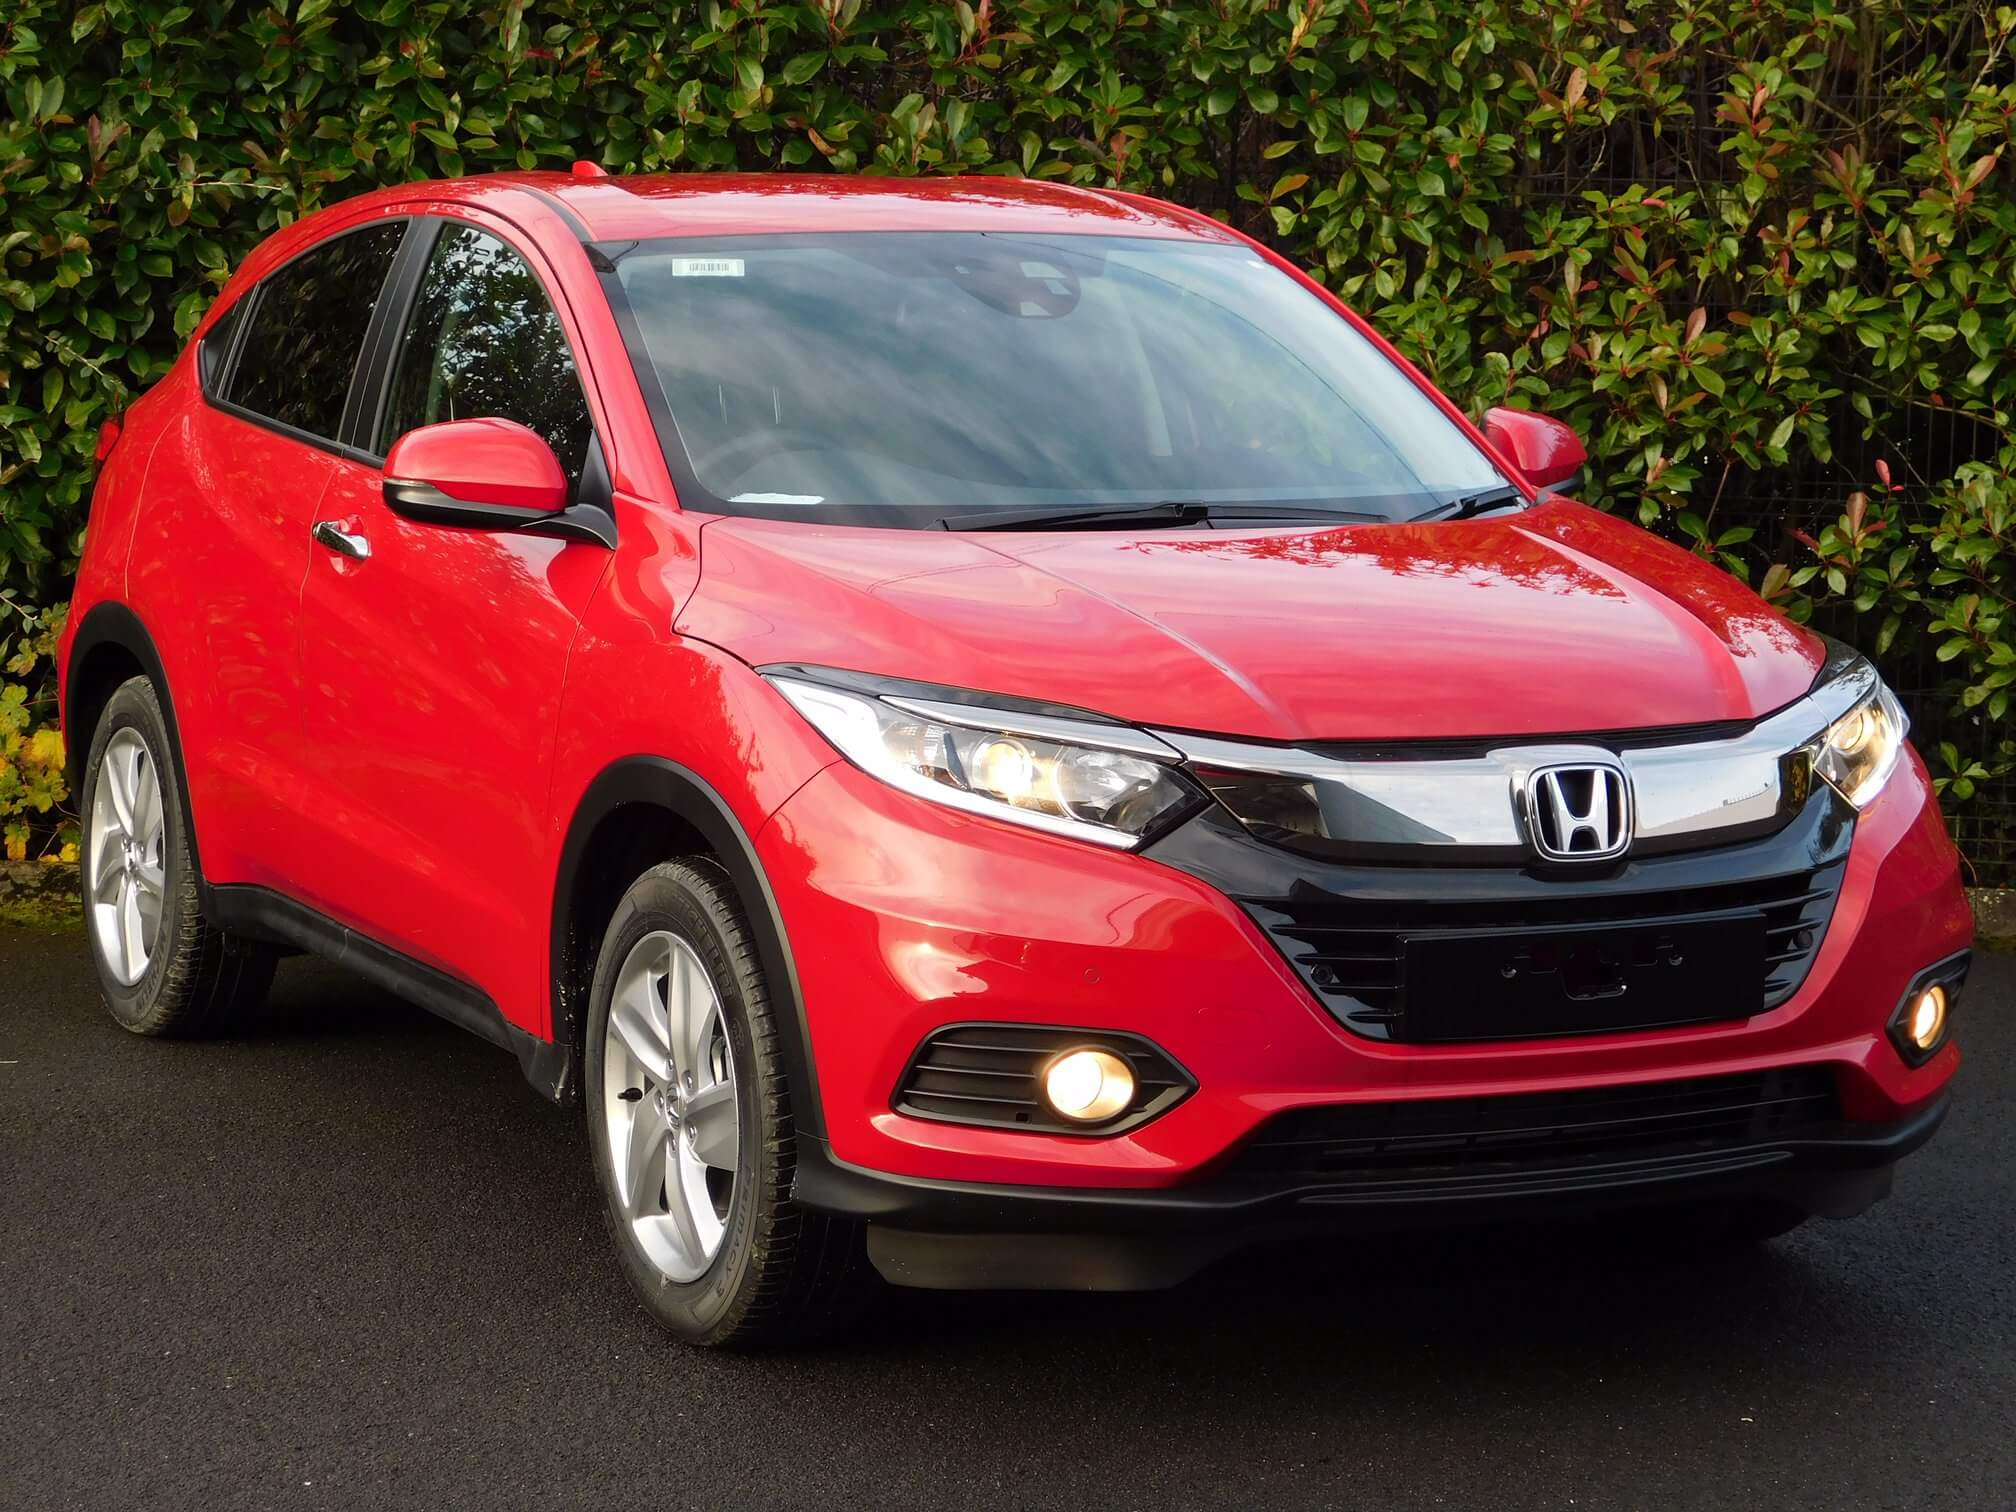 2019 HR-V available at Fitzpatrick's Garage Kildare